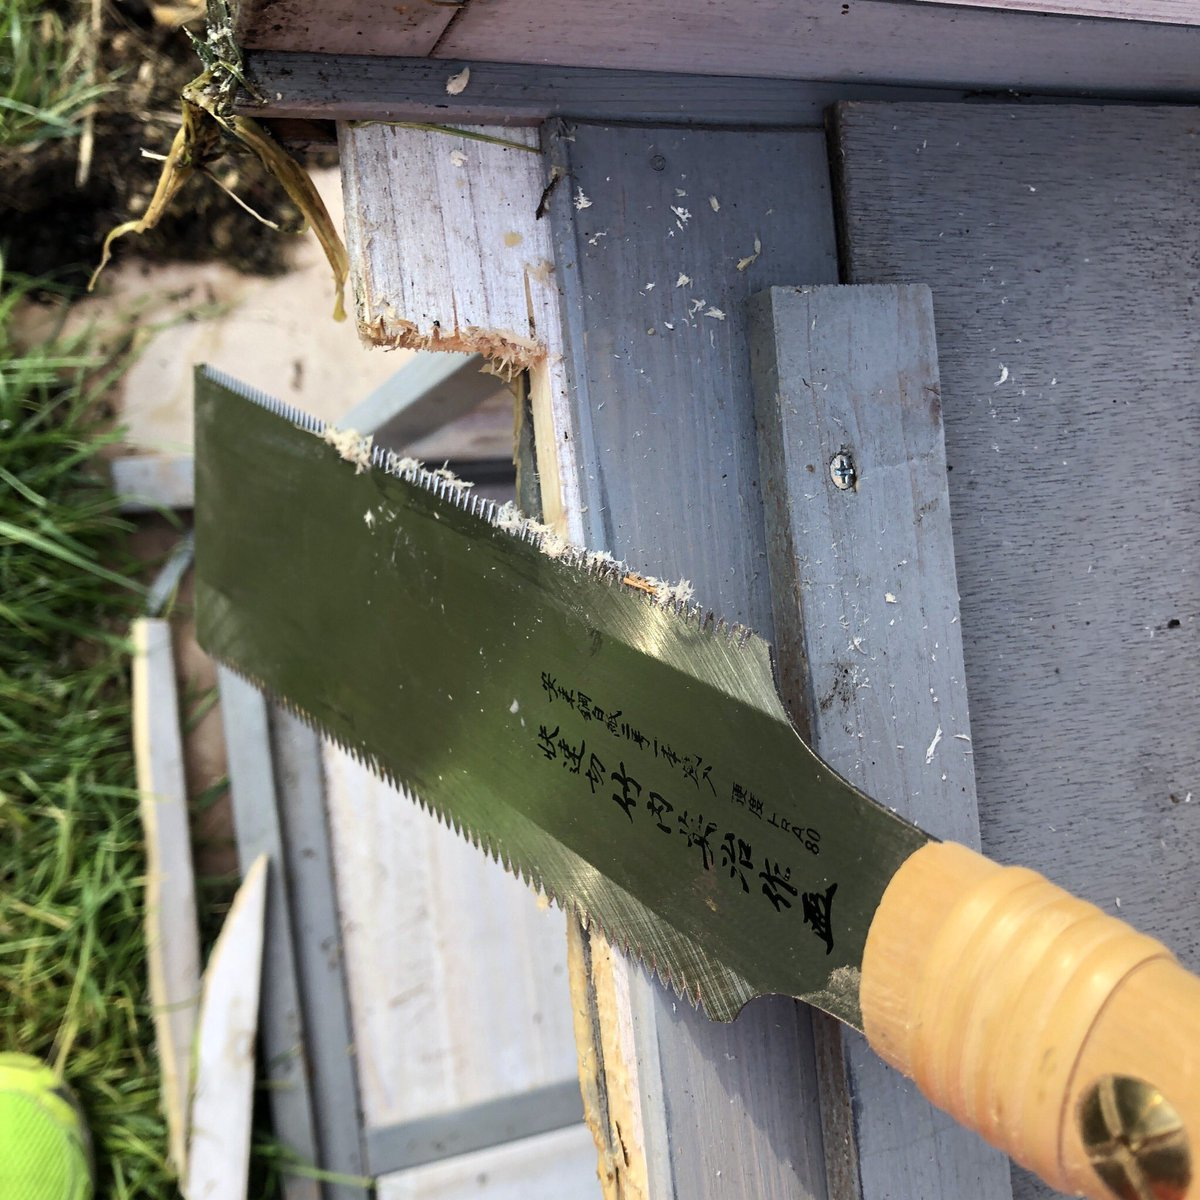 Cleaning up a rough jigsaw cut with my Japanese pull saw. Love that tool. #beautiful #japan #pull #saw #woodworking #love #diy #handmade<br>http://pic.twitter.com/DHSZ44lHmo